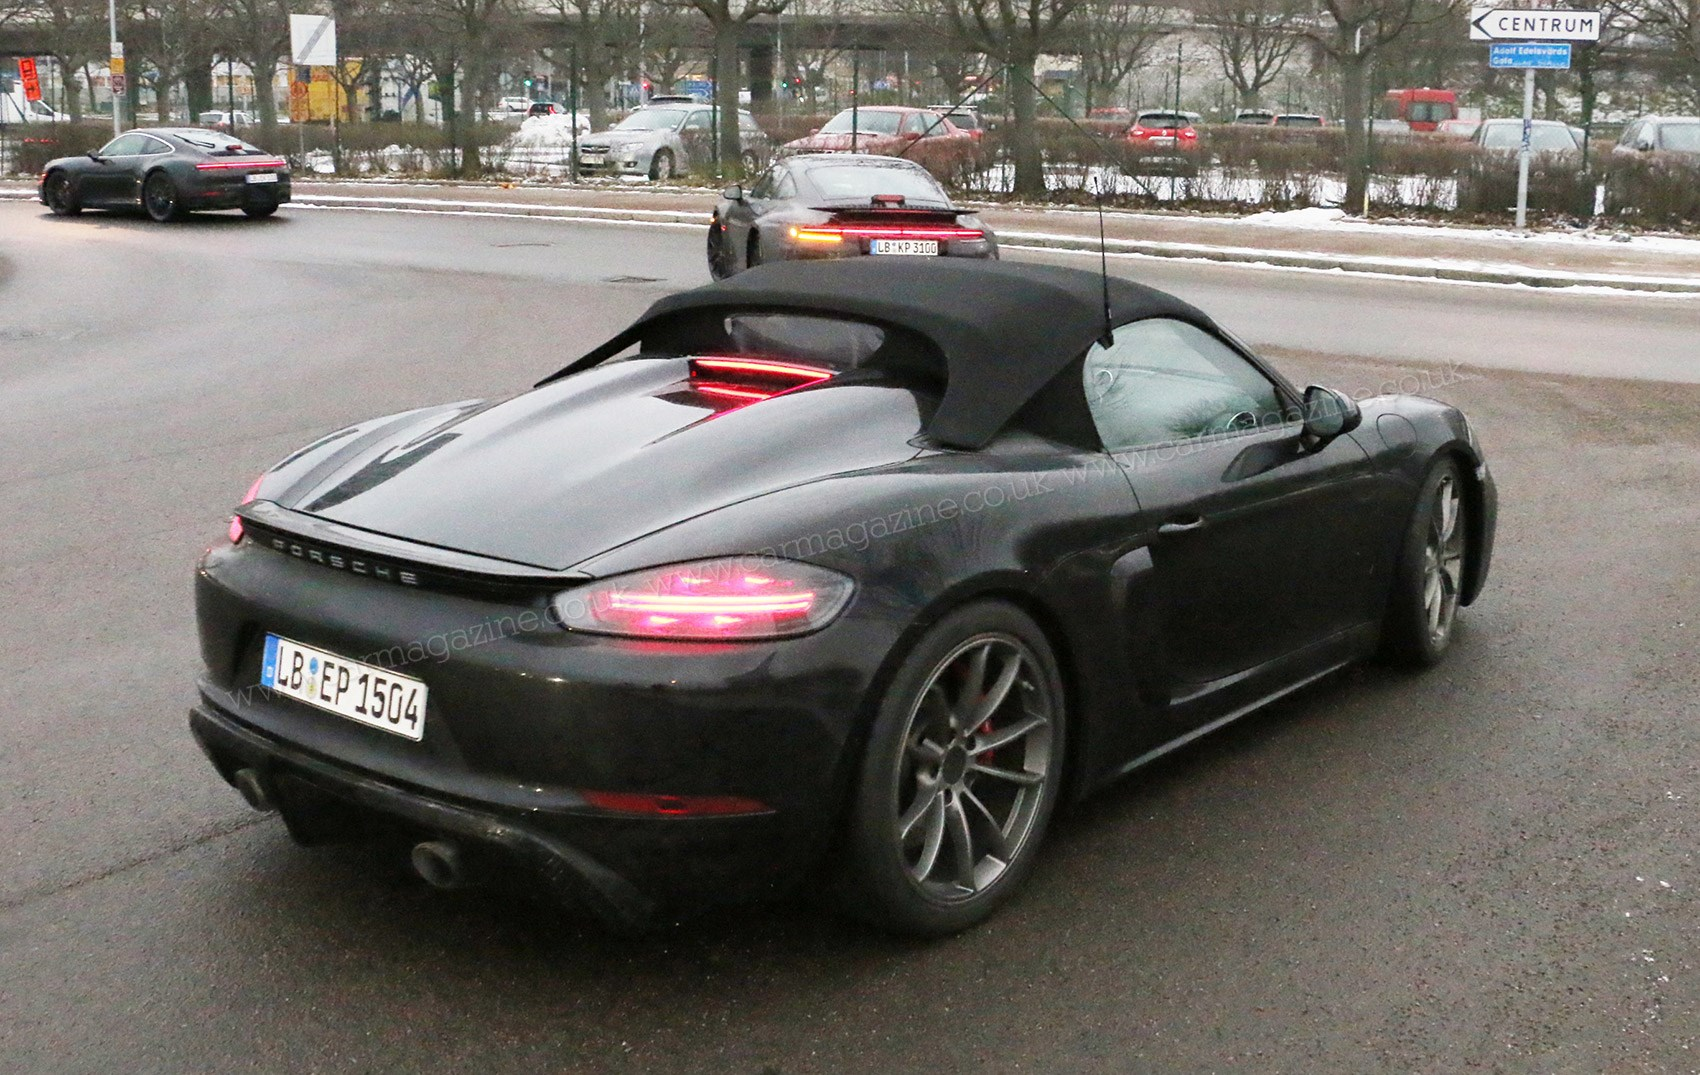 ... A huge rear deck noticeable on this Porsche 718 Boxster Spyder  prototype we caught refuelling in Scandinavia